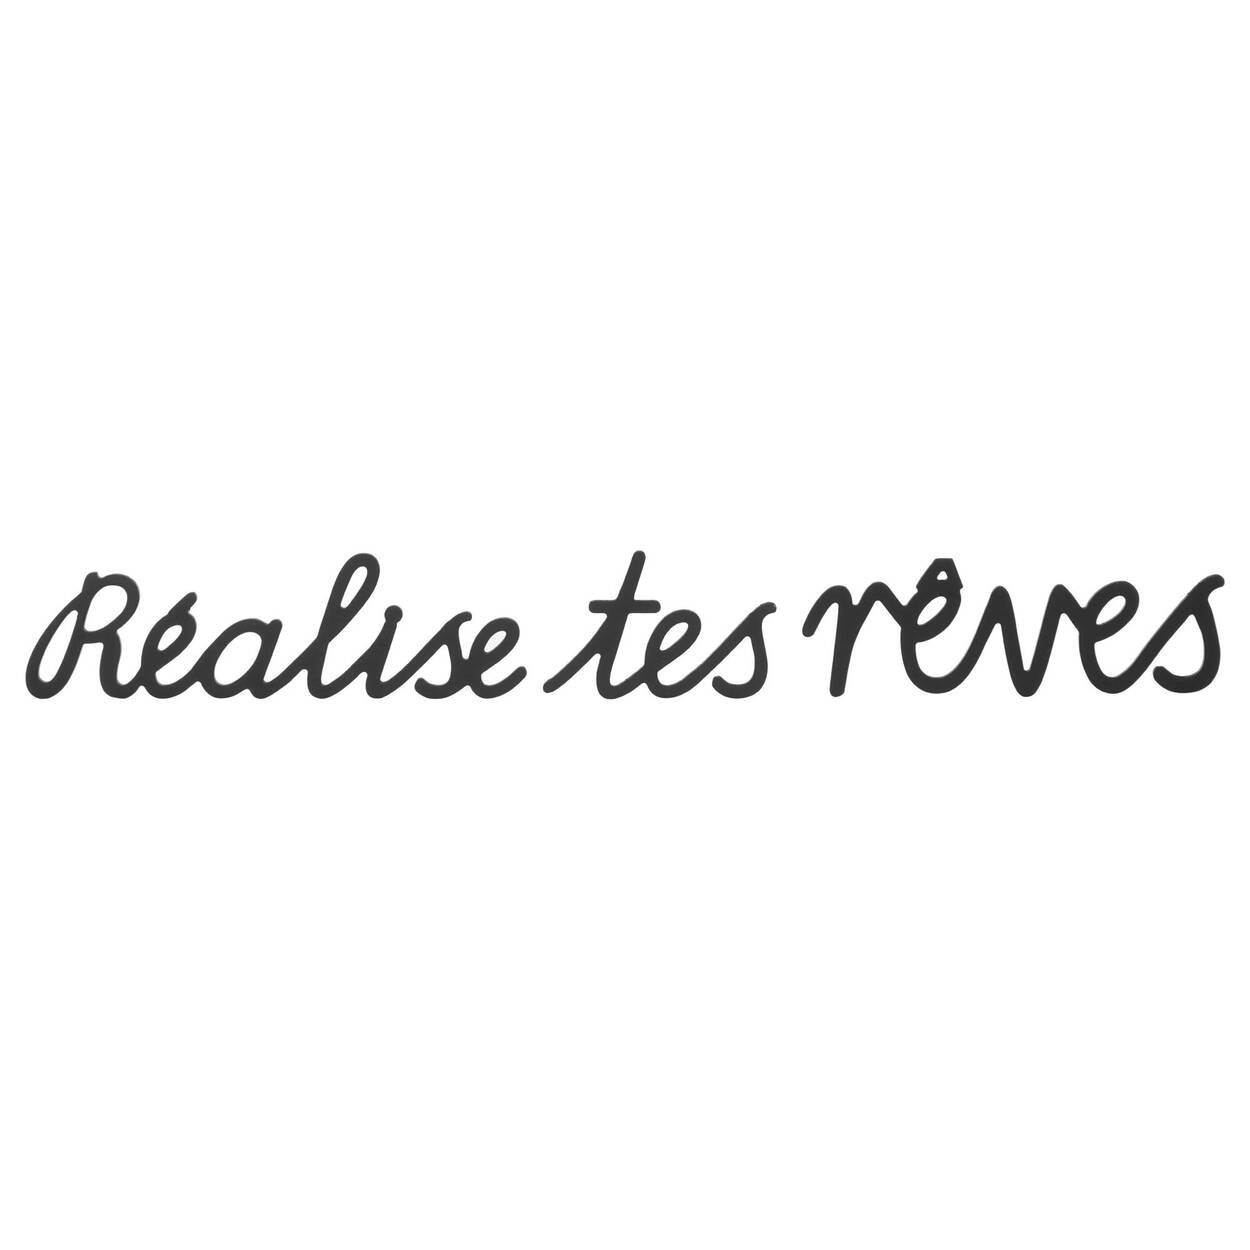 Réalise tes rêves French Wall Art